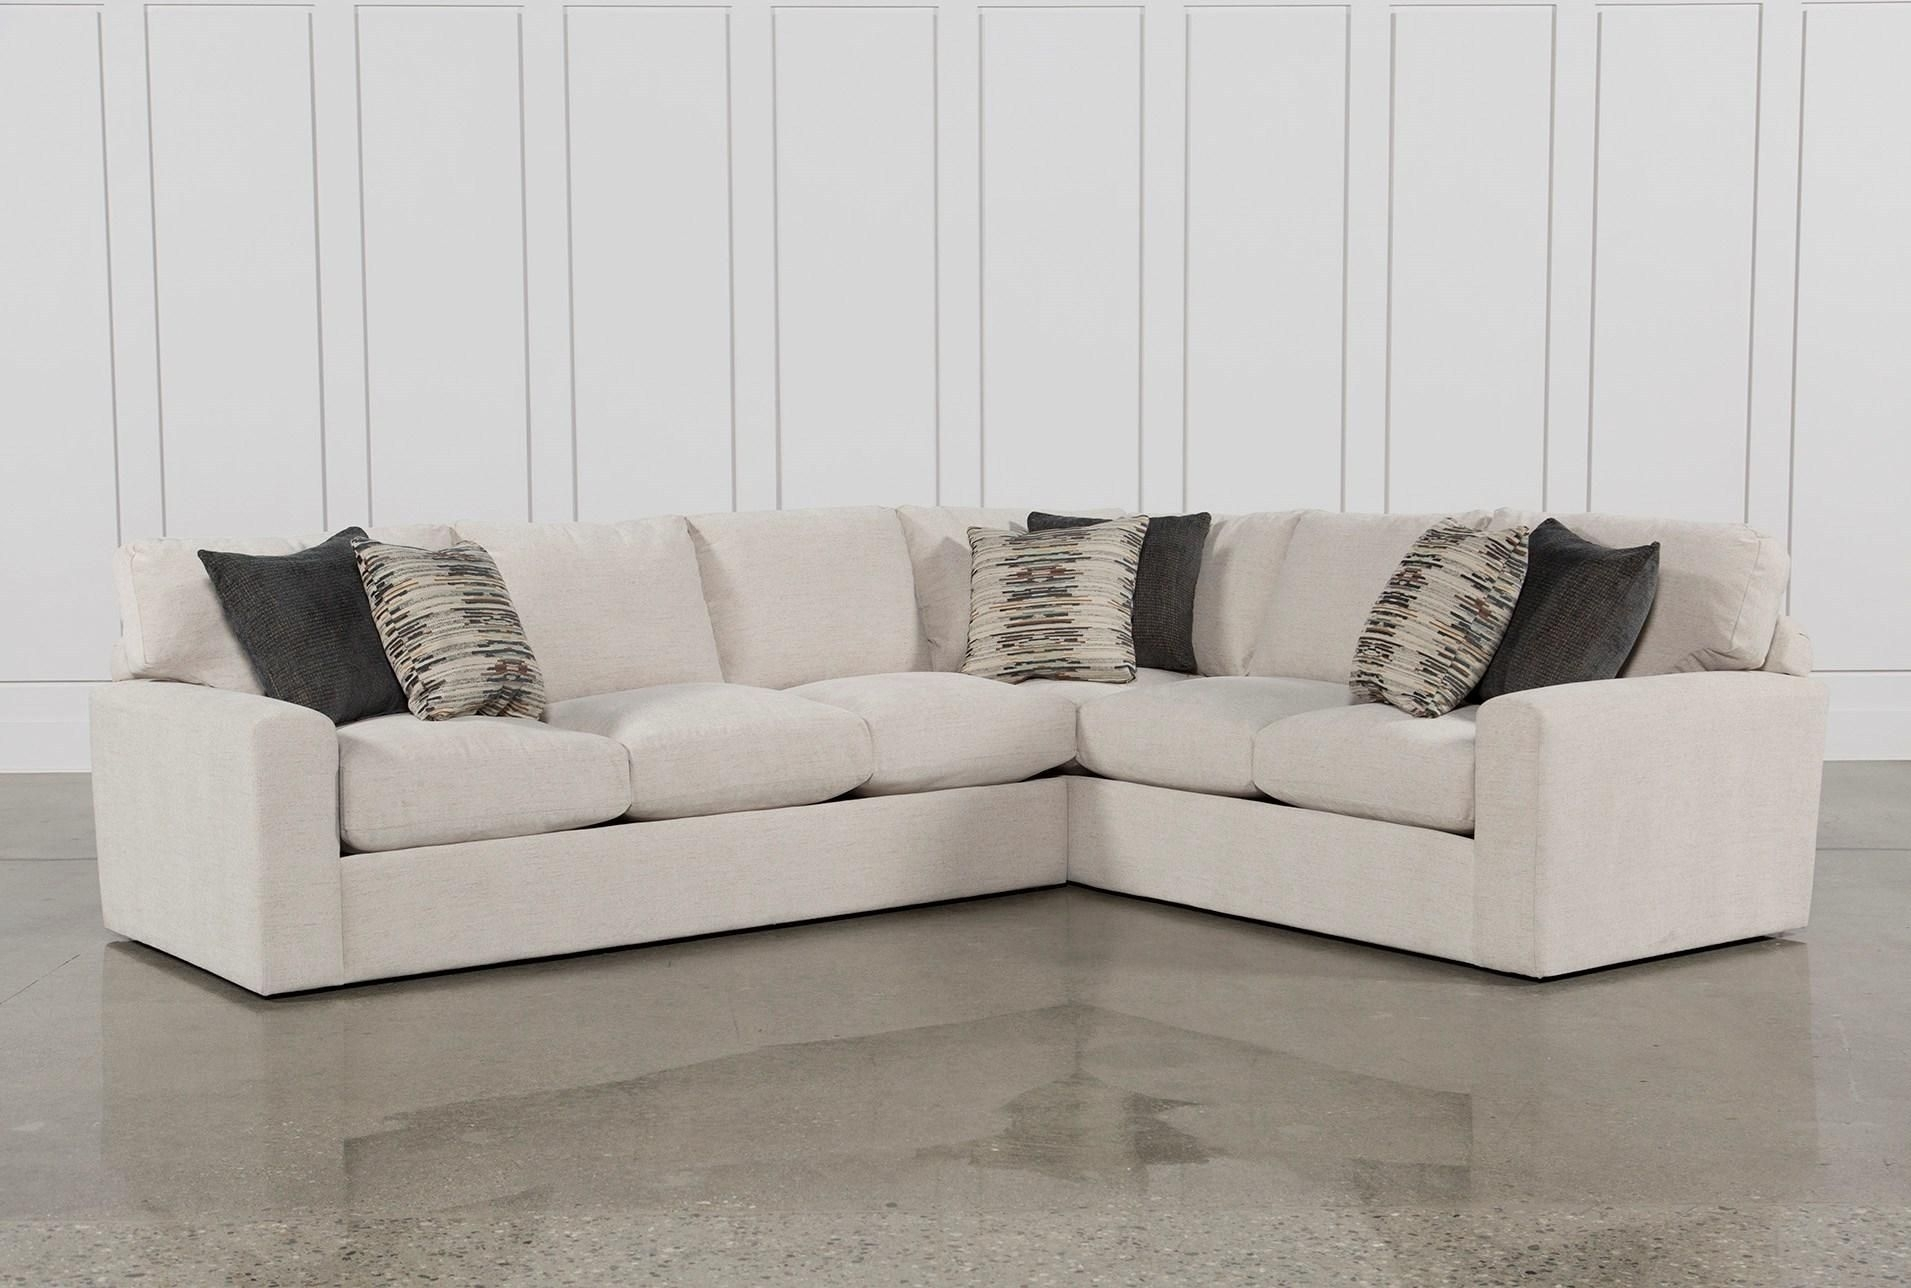 Bowen 2 Piece Sectional, White, Sofas | Living Rooms, Sinks And Room inside Adeline 3 Piece Sectionals (Image 8 of 30)